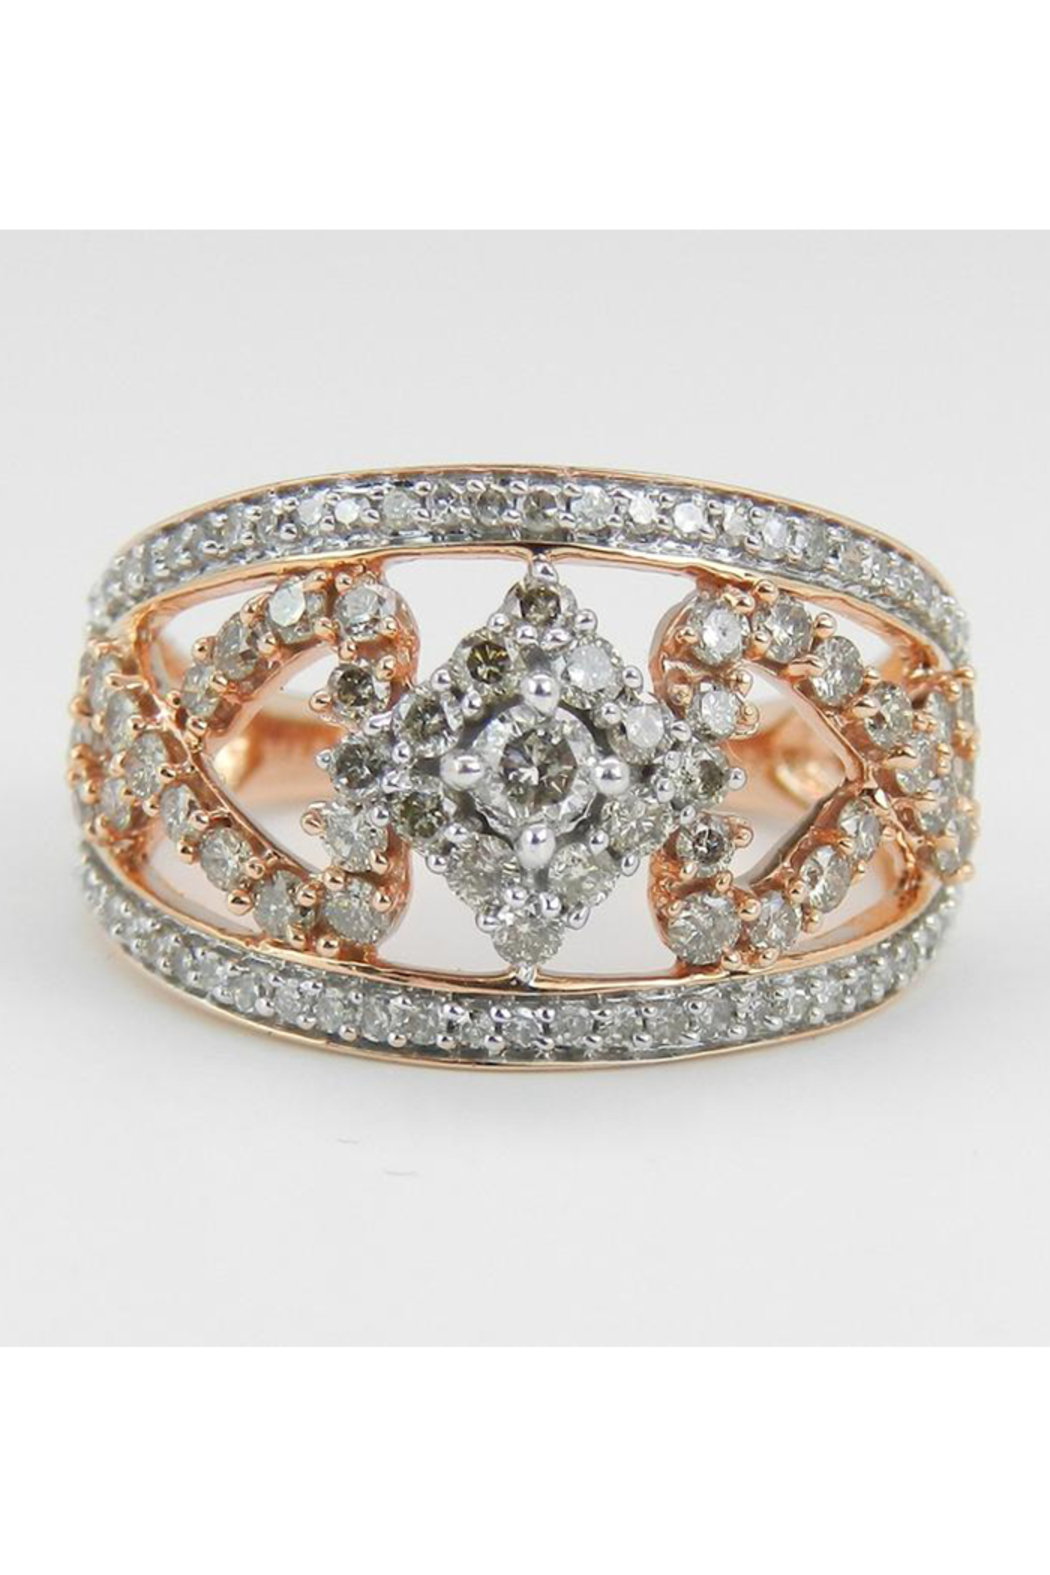 Margolin & Co 1.00 ct Diamond Cluster Heart Cocktail Ring Statement Band Rose Pink Gold Size 7.25 - Main Image